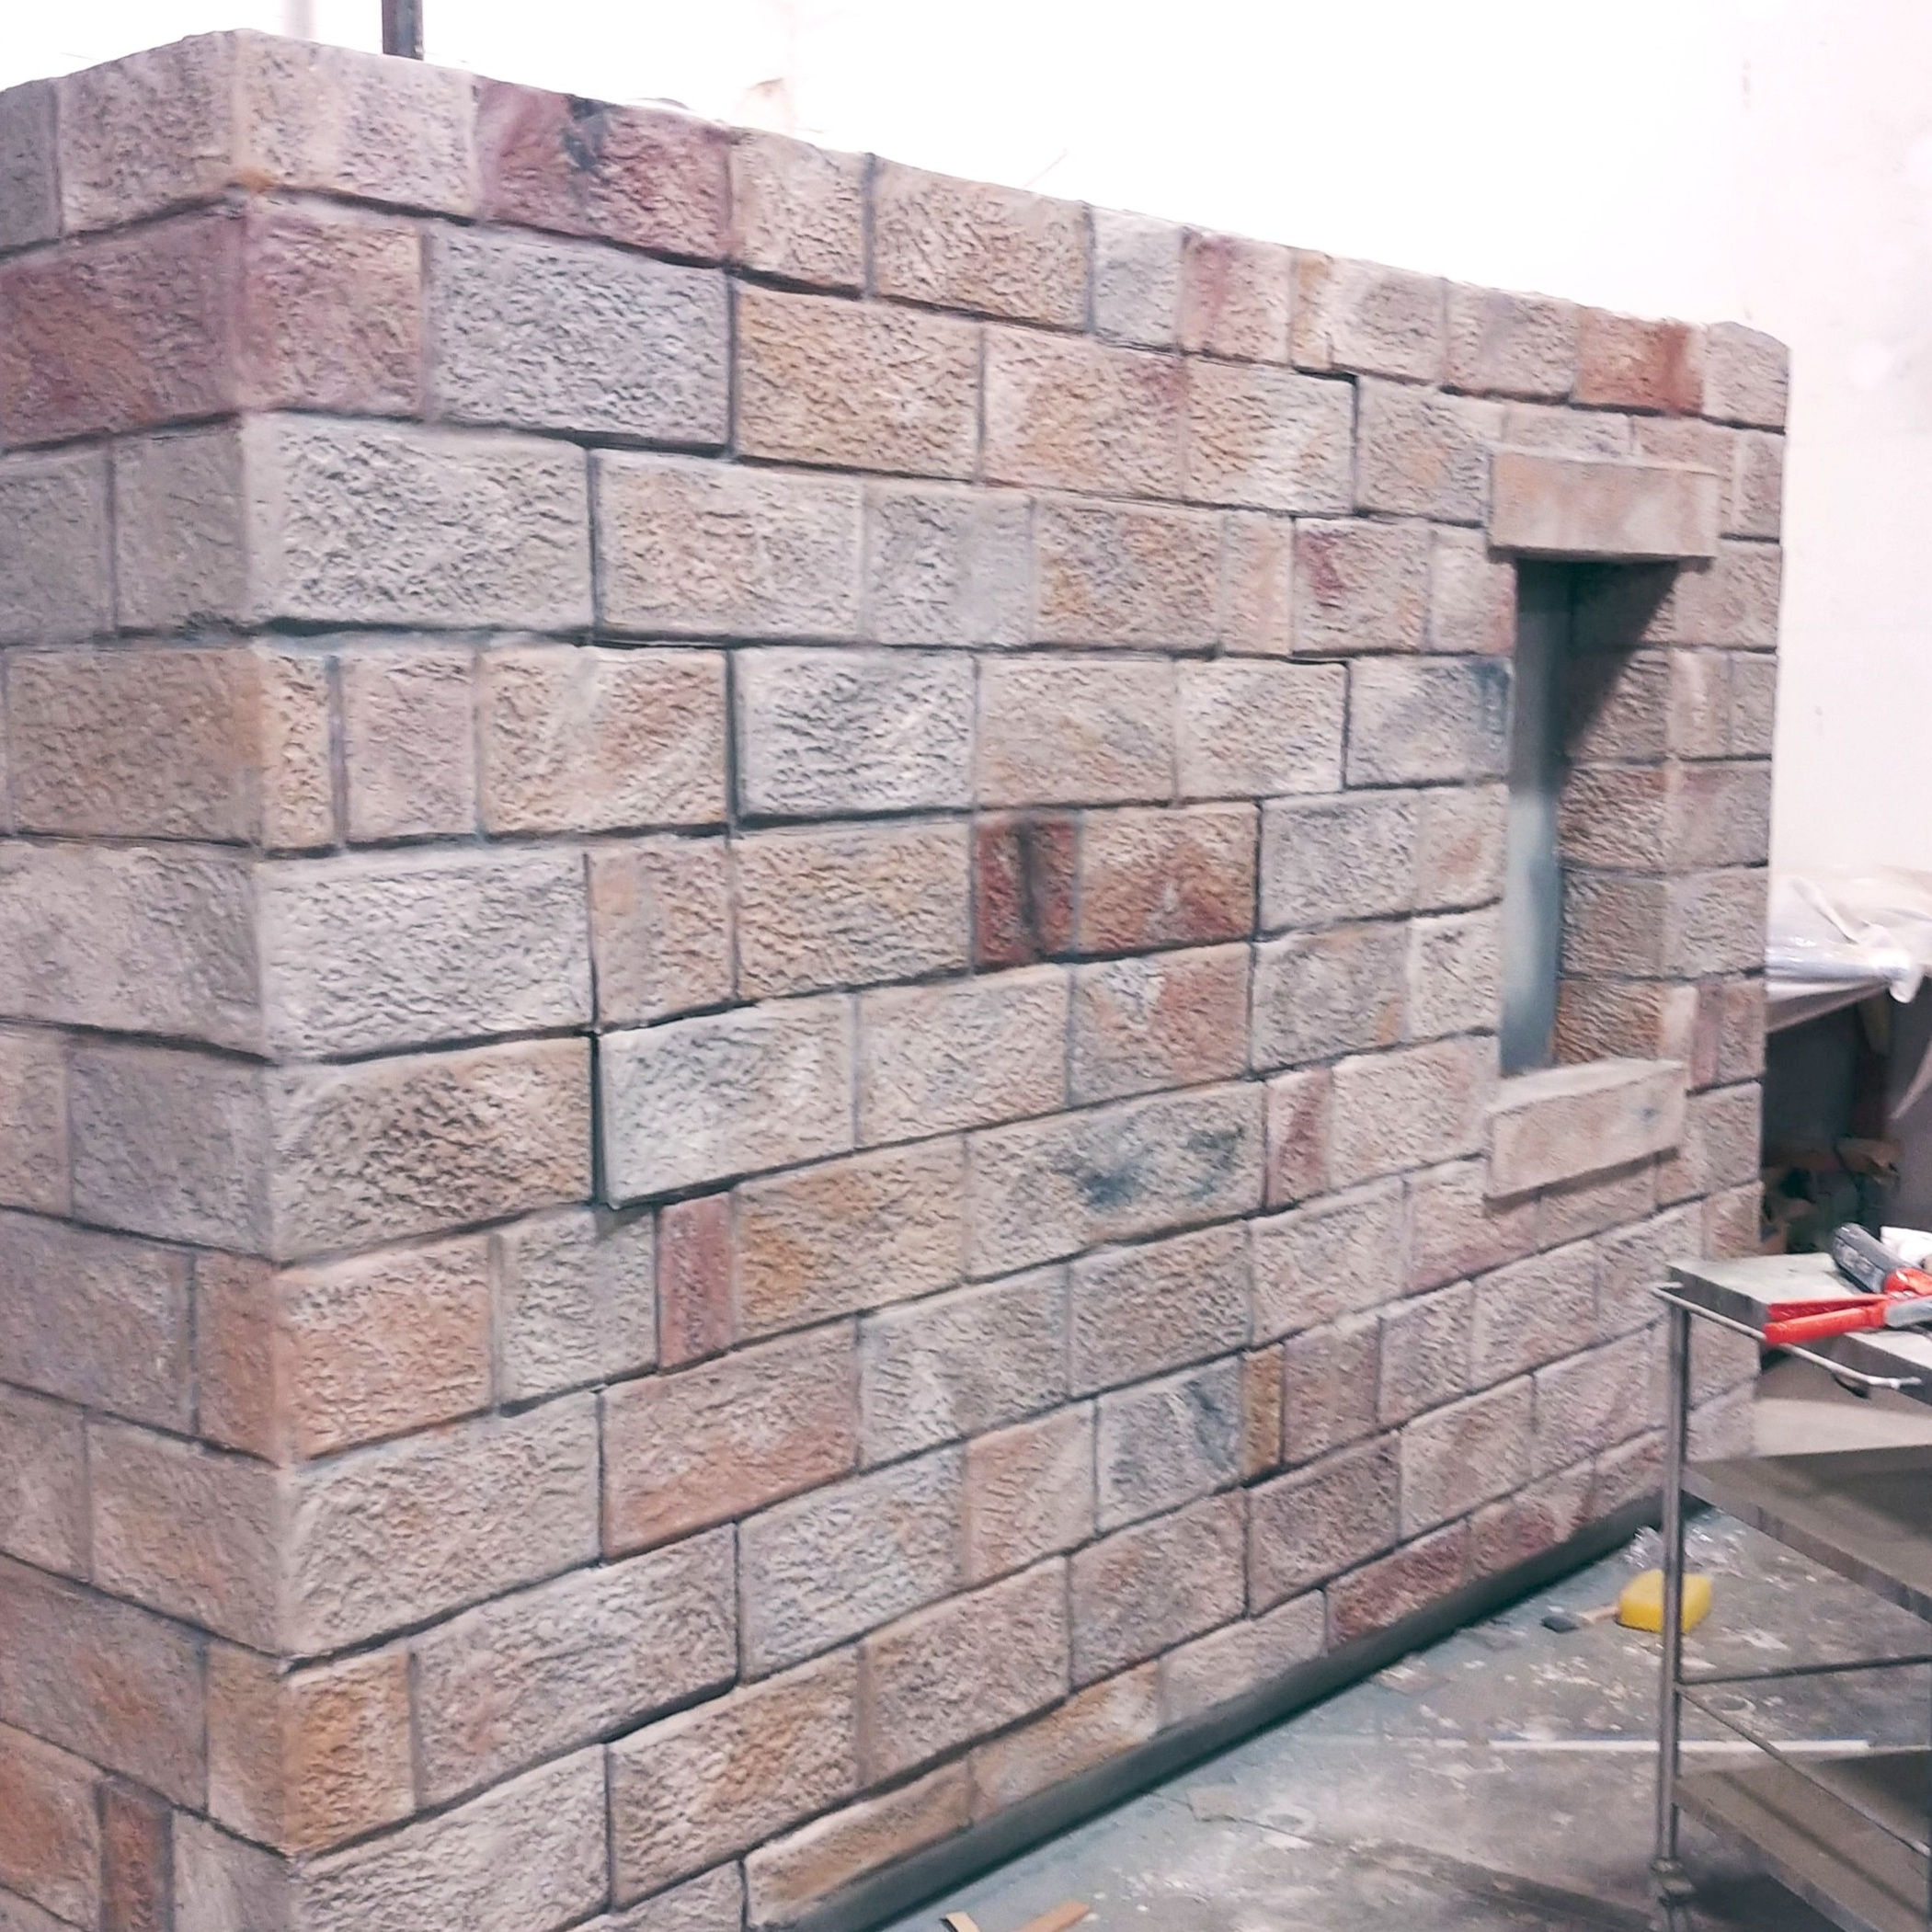 Scenic wall element for Old West Jail exhibit at Kimble County Historical Museum